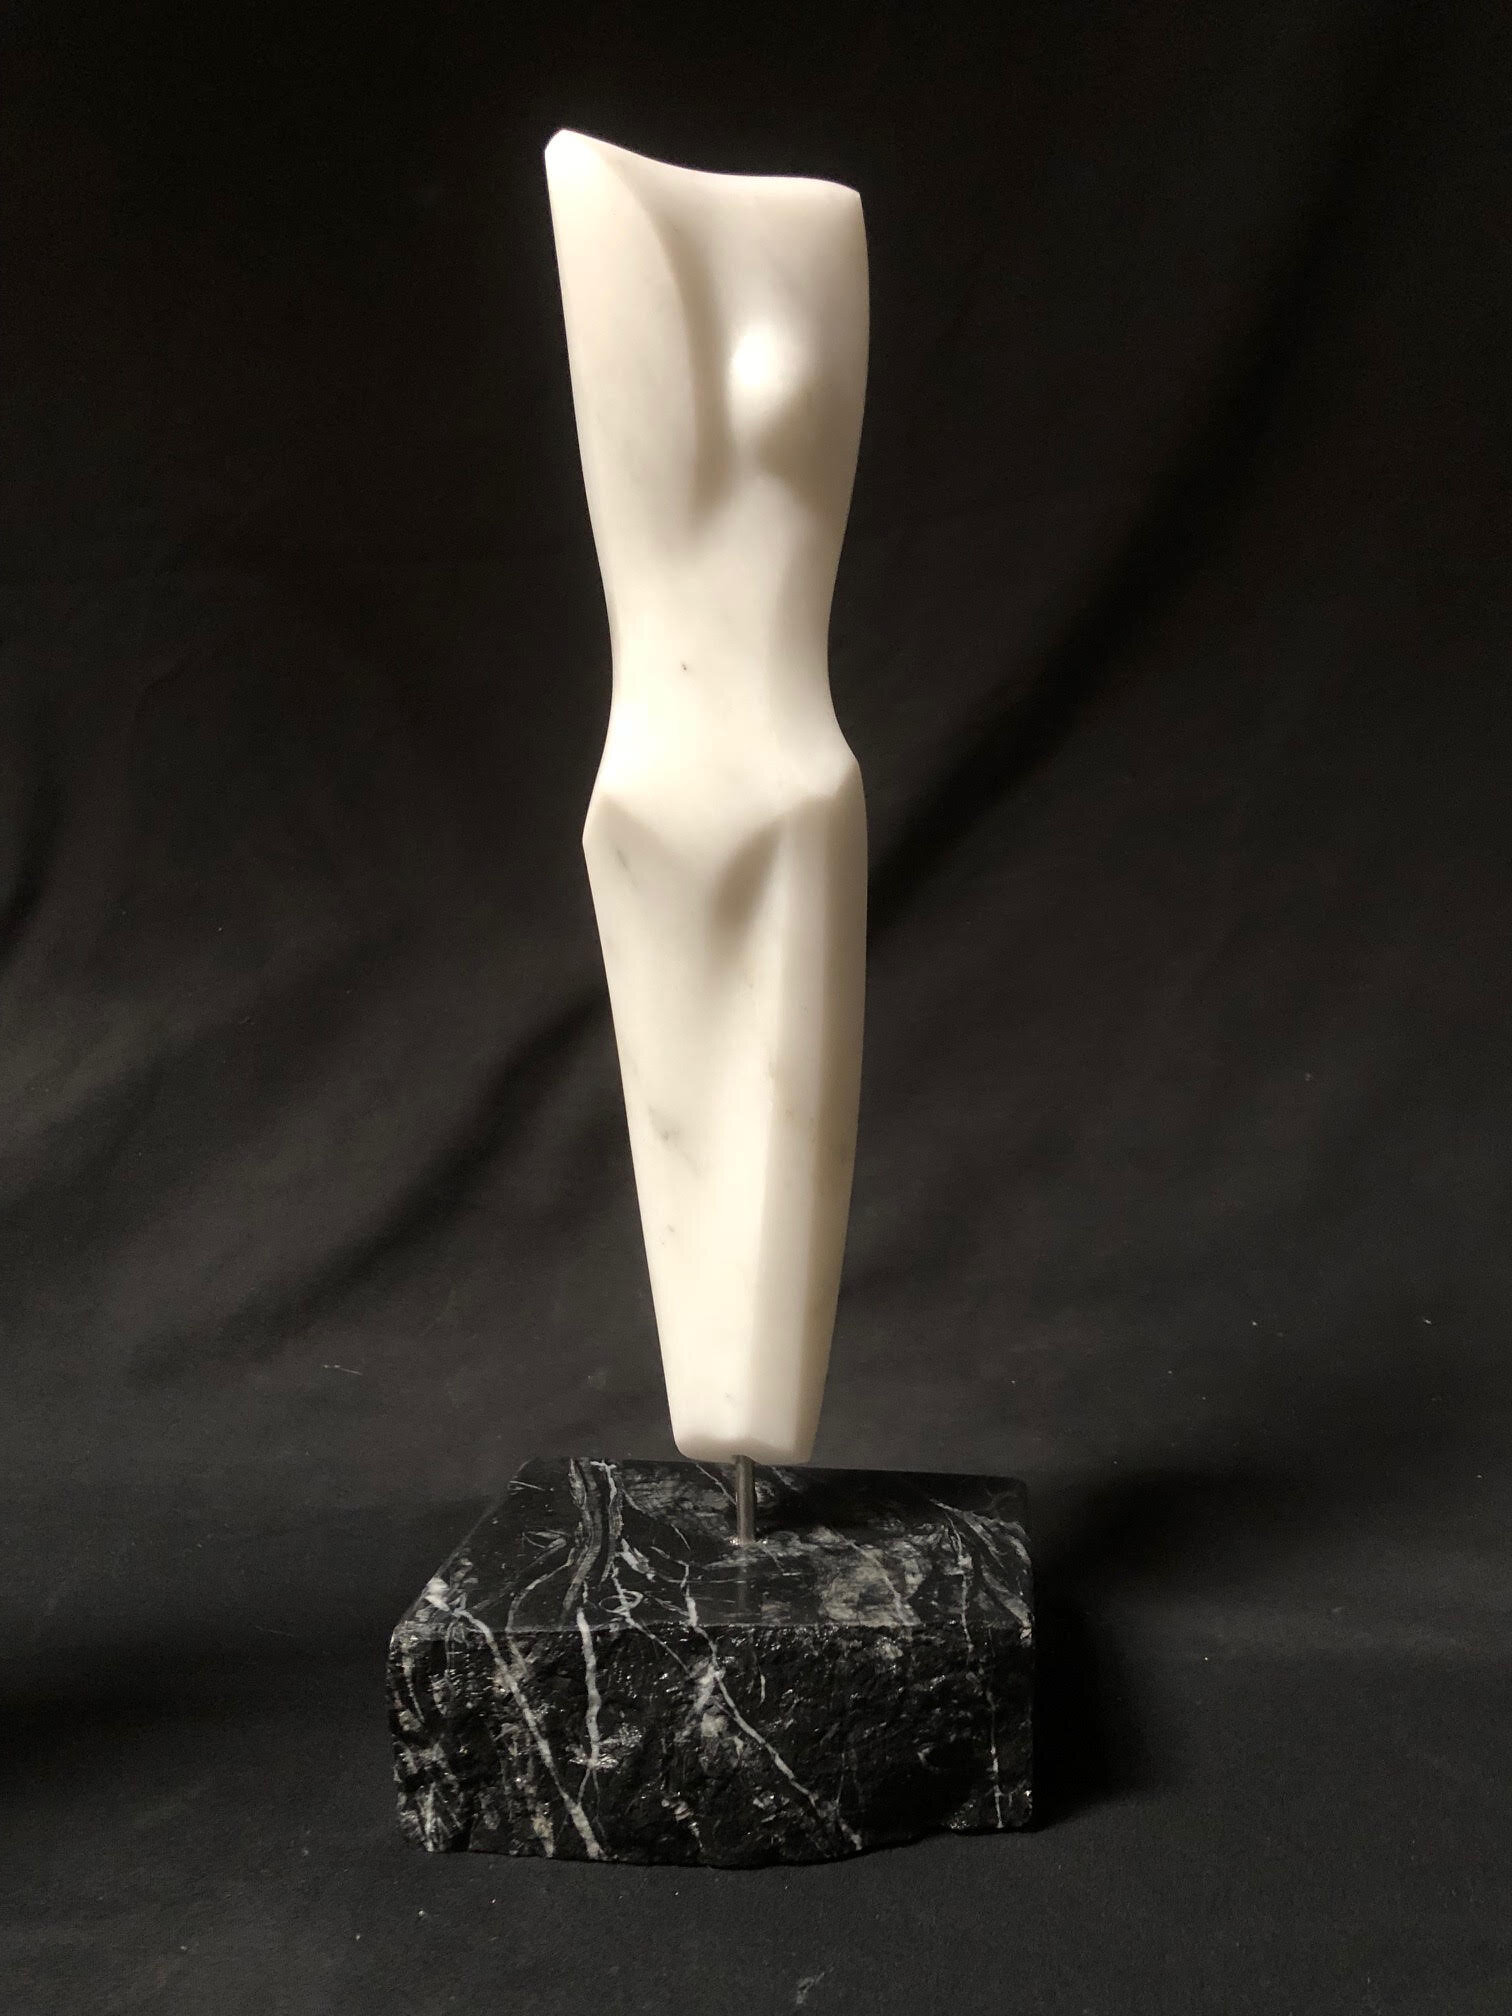 Cycladic Sister 1 (Maquette)